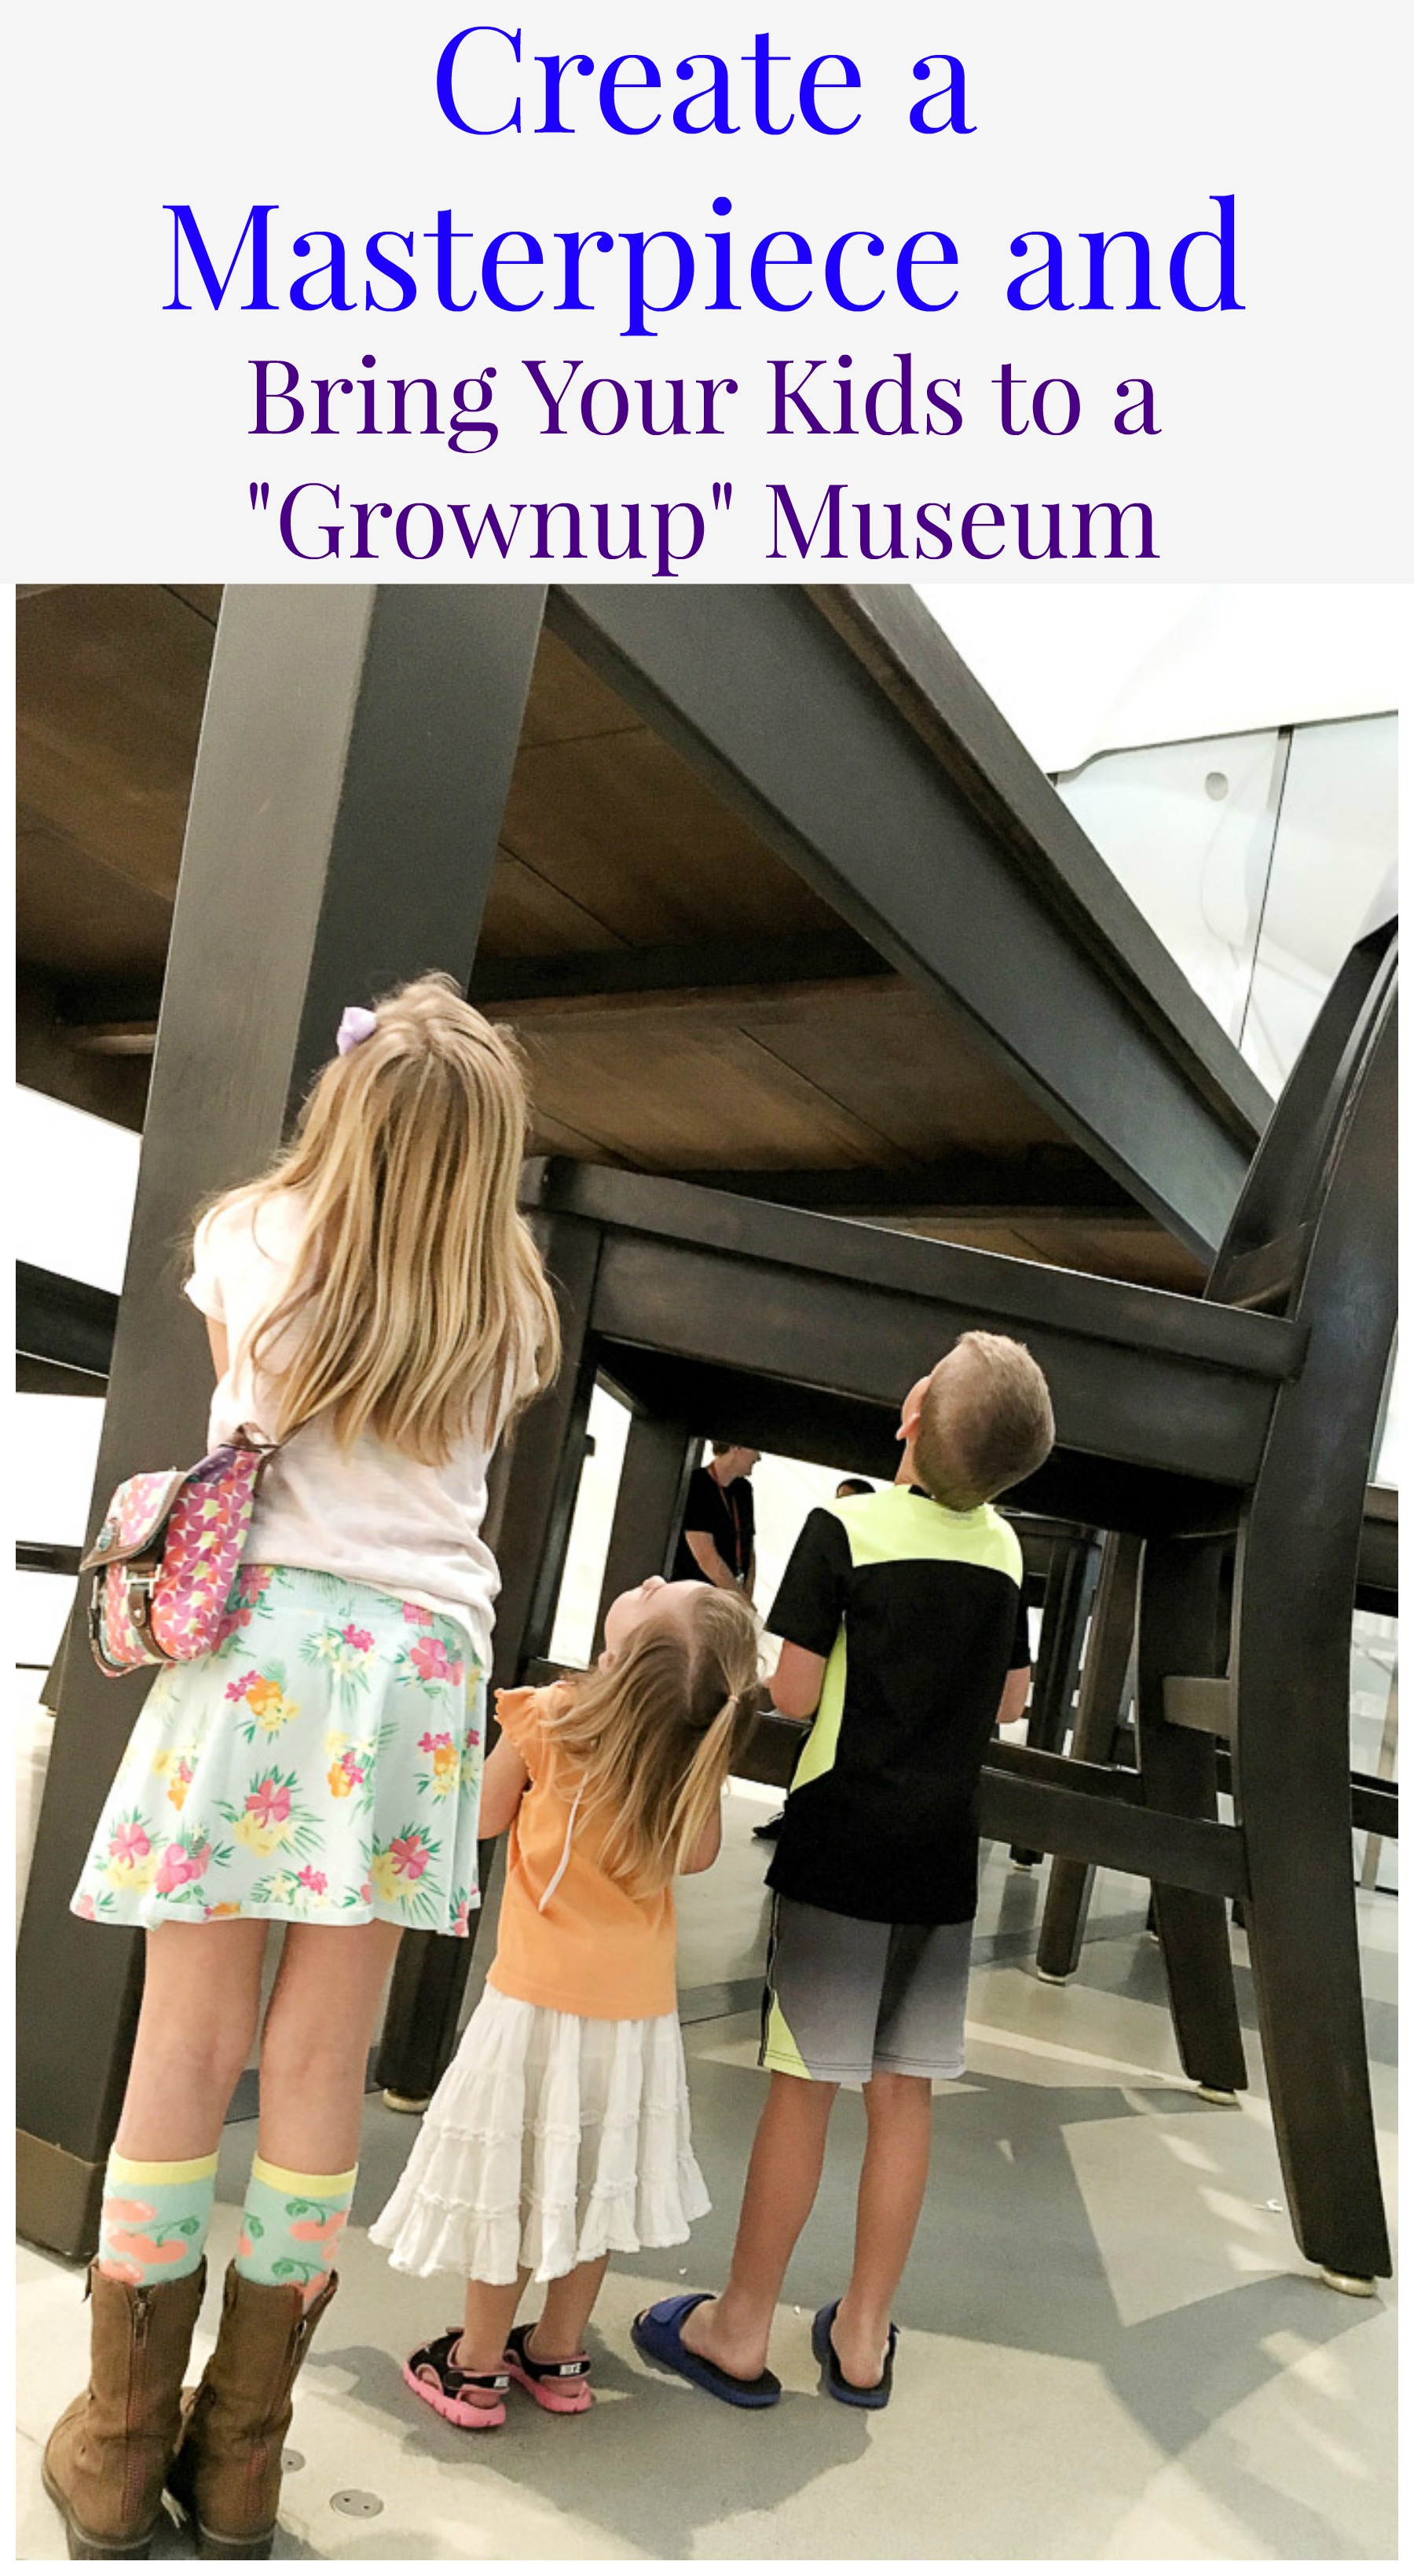 Do you bring your children to art museums? There are many family and kid friendly activities at art museums. Some of our favorites are The Broad, Los Angeles County Museum of Art (LACMA), The Huntington, and the Minneapolis Institute of Art (MIA).